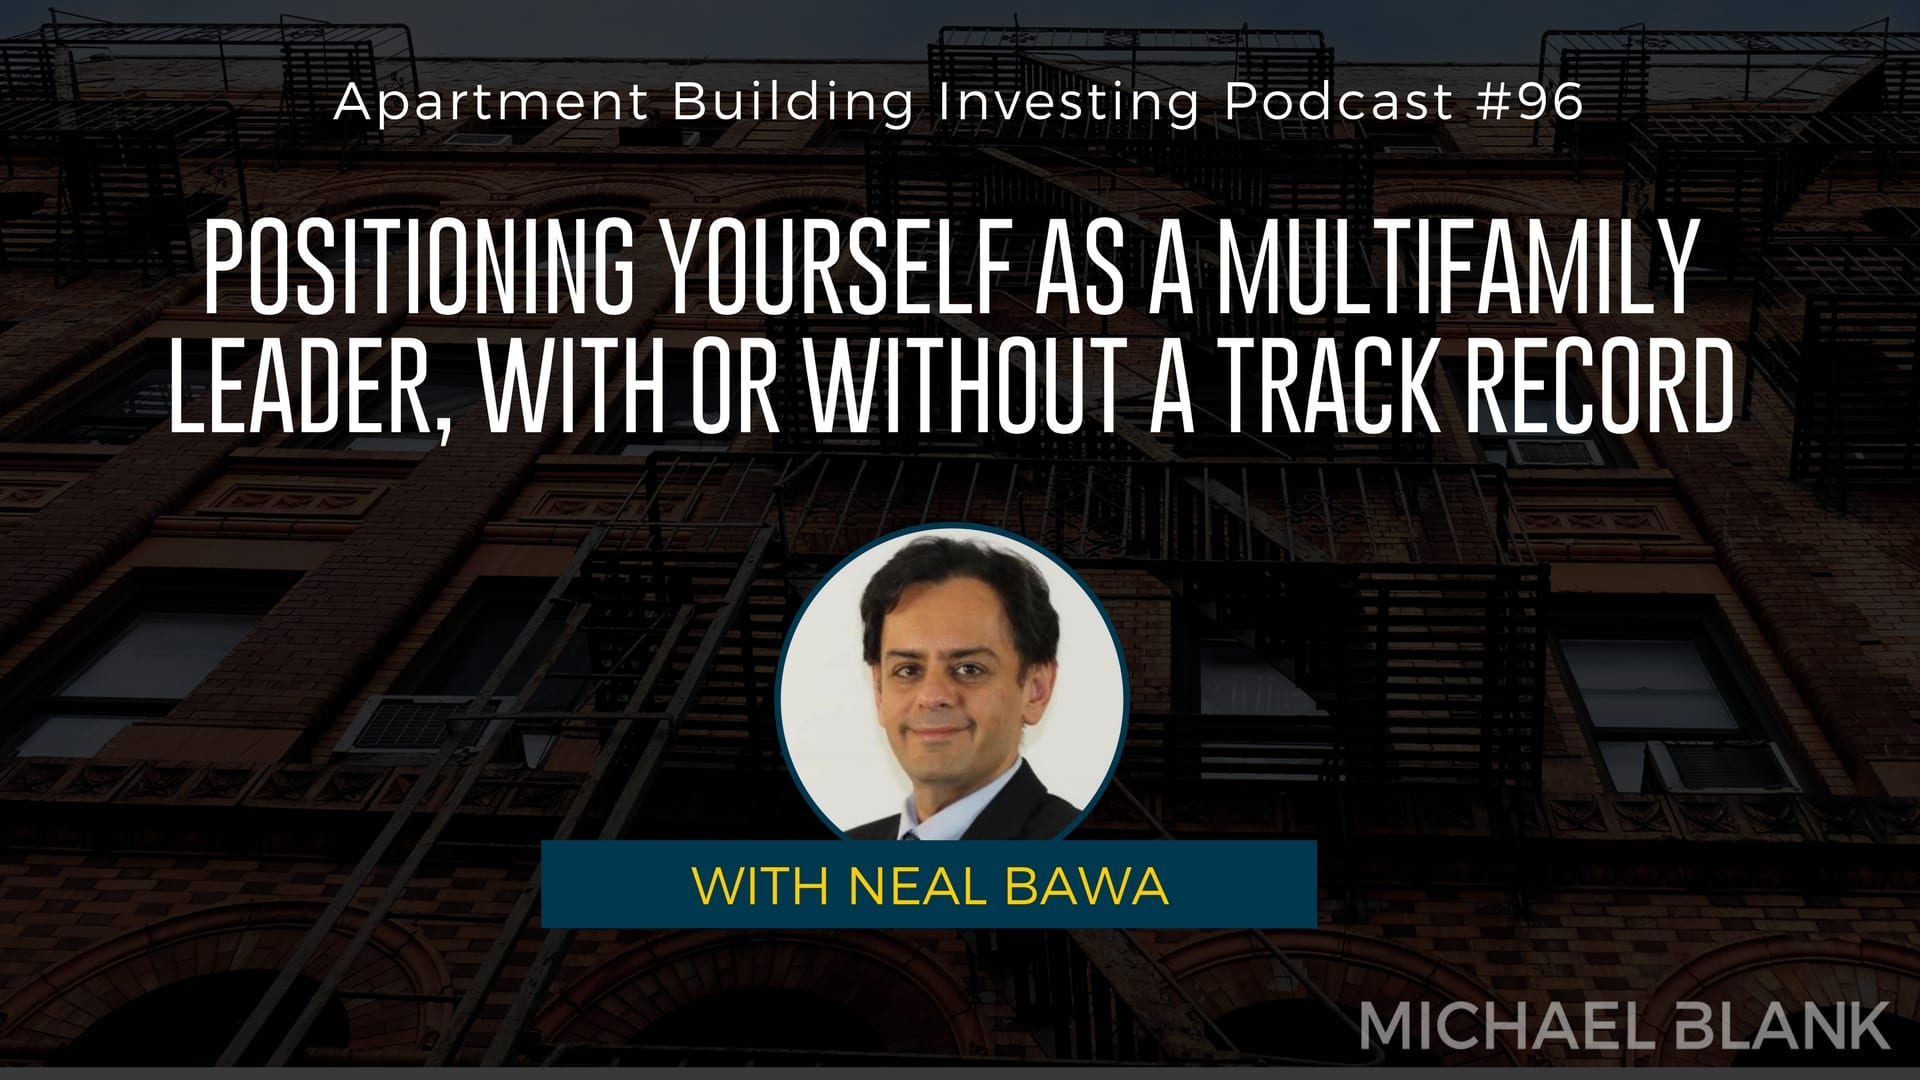 MB 096: Positioning Yourself as a Multifamily Leader, With or Without a Track Record- with Neal Bawa